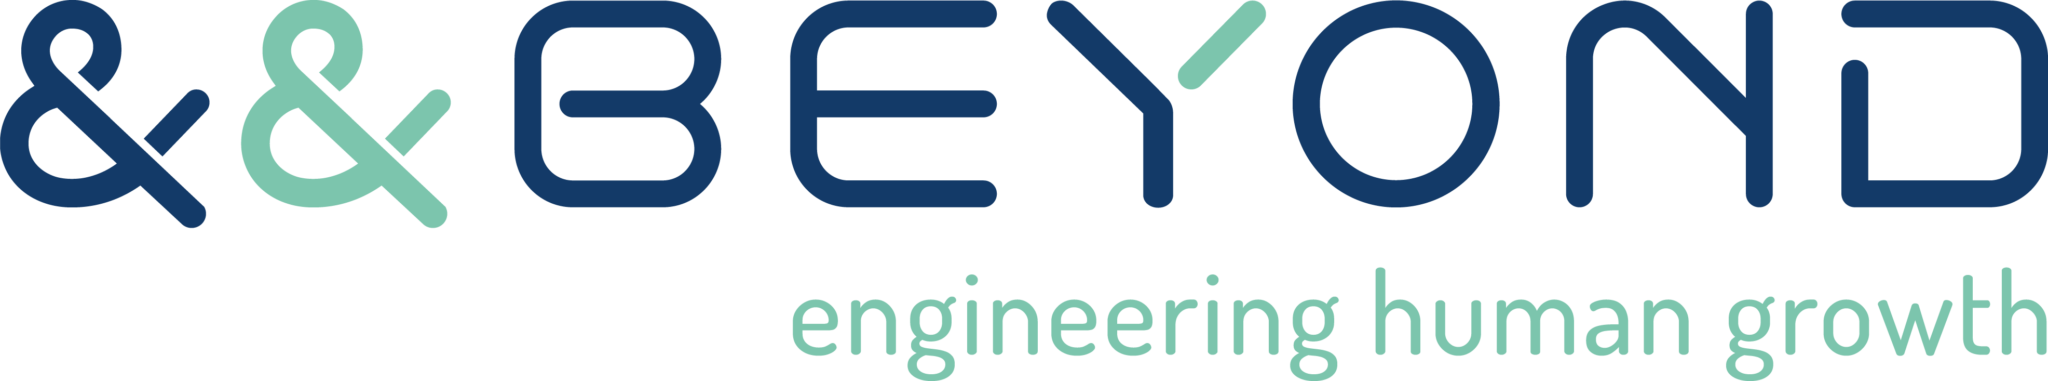 nnBeyond, engineering human growth